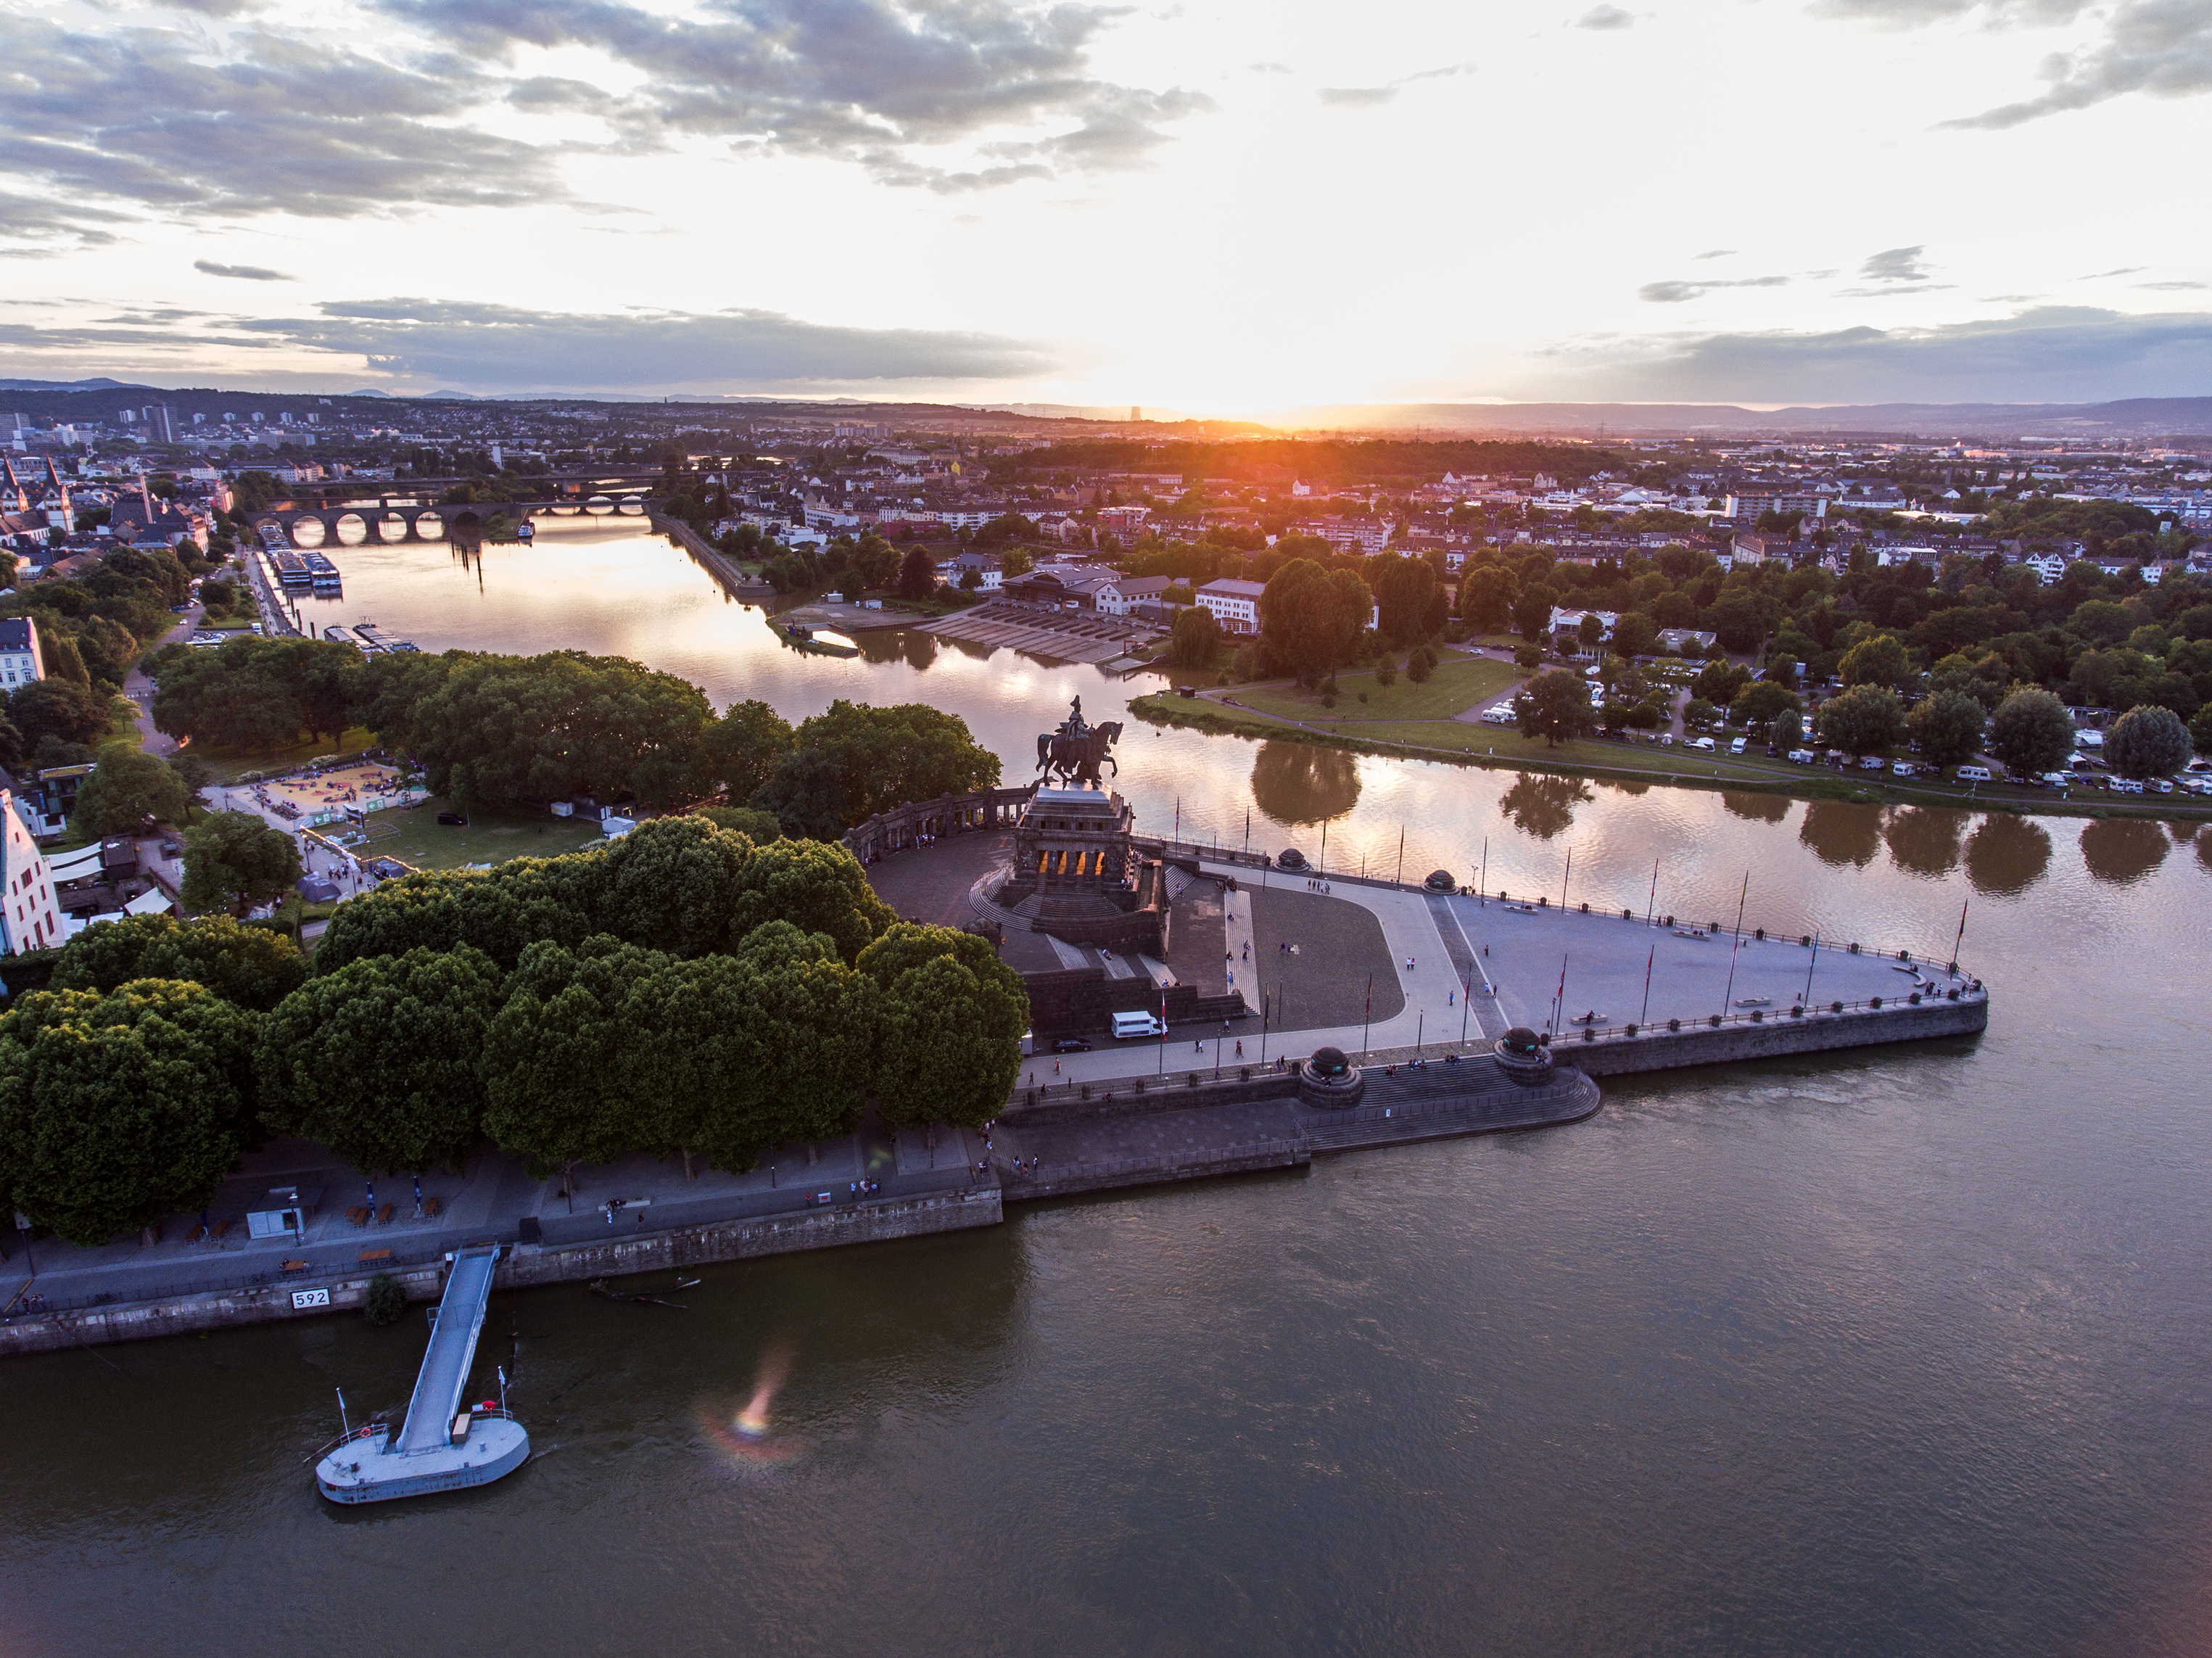 Sunset in Koblenz City Germany with historic German Corner where Rhine and moselle flow together